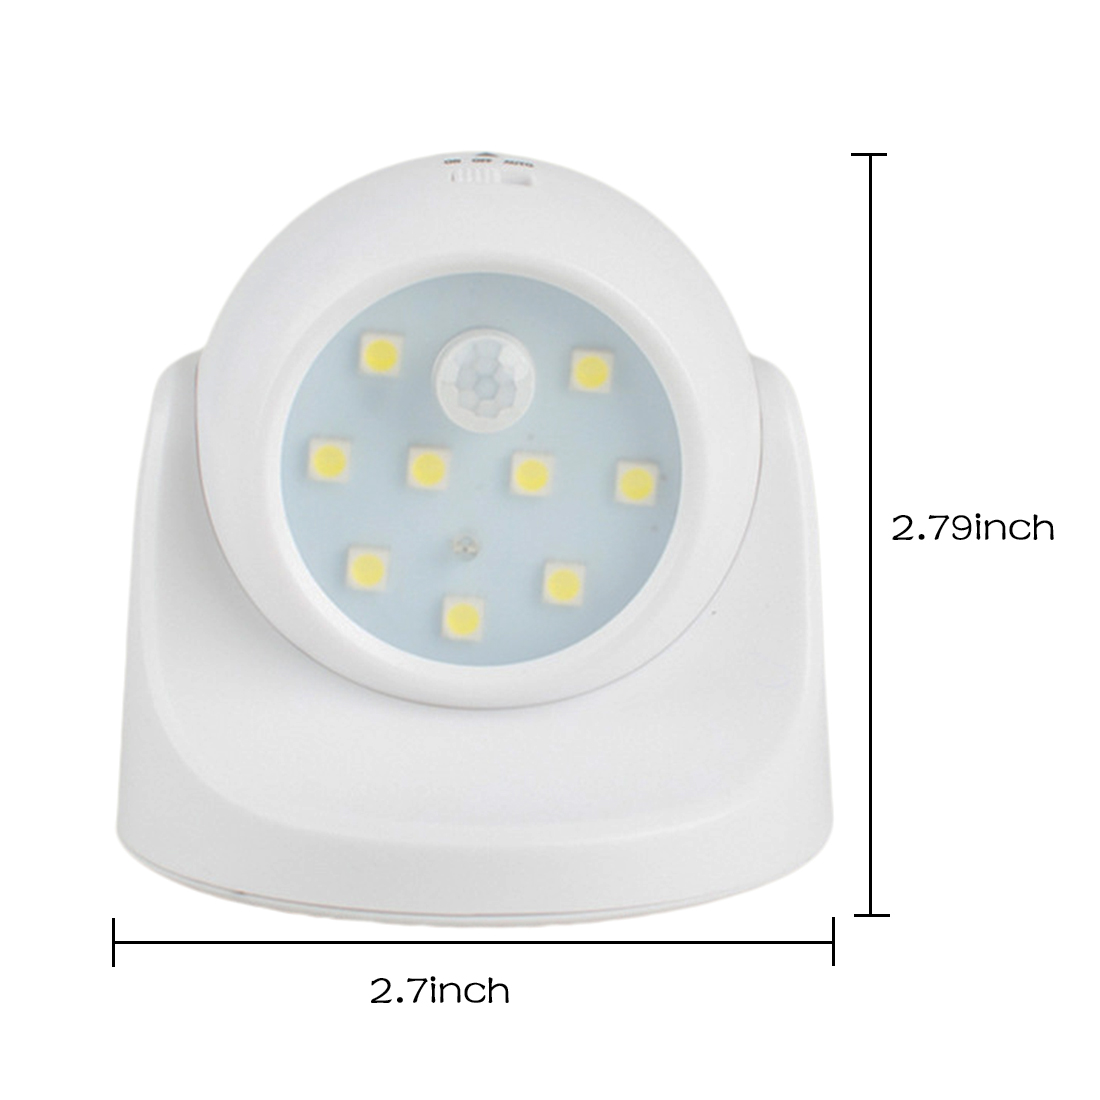 Hot 9 LED Motion Sensor Night Light 360 Degree Rotation Portable Night Light Auto IR Infrared Luminary Lamp Children Lamp LEDHot 9 LED Motion Sensor Night Light 360 Degree Rotation Portable Night Light Auto IR Infrared Luminary Lamp Children Lamp LED